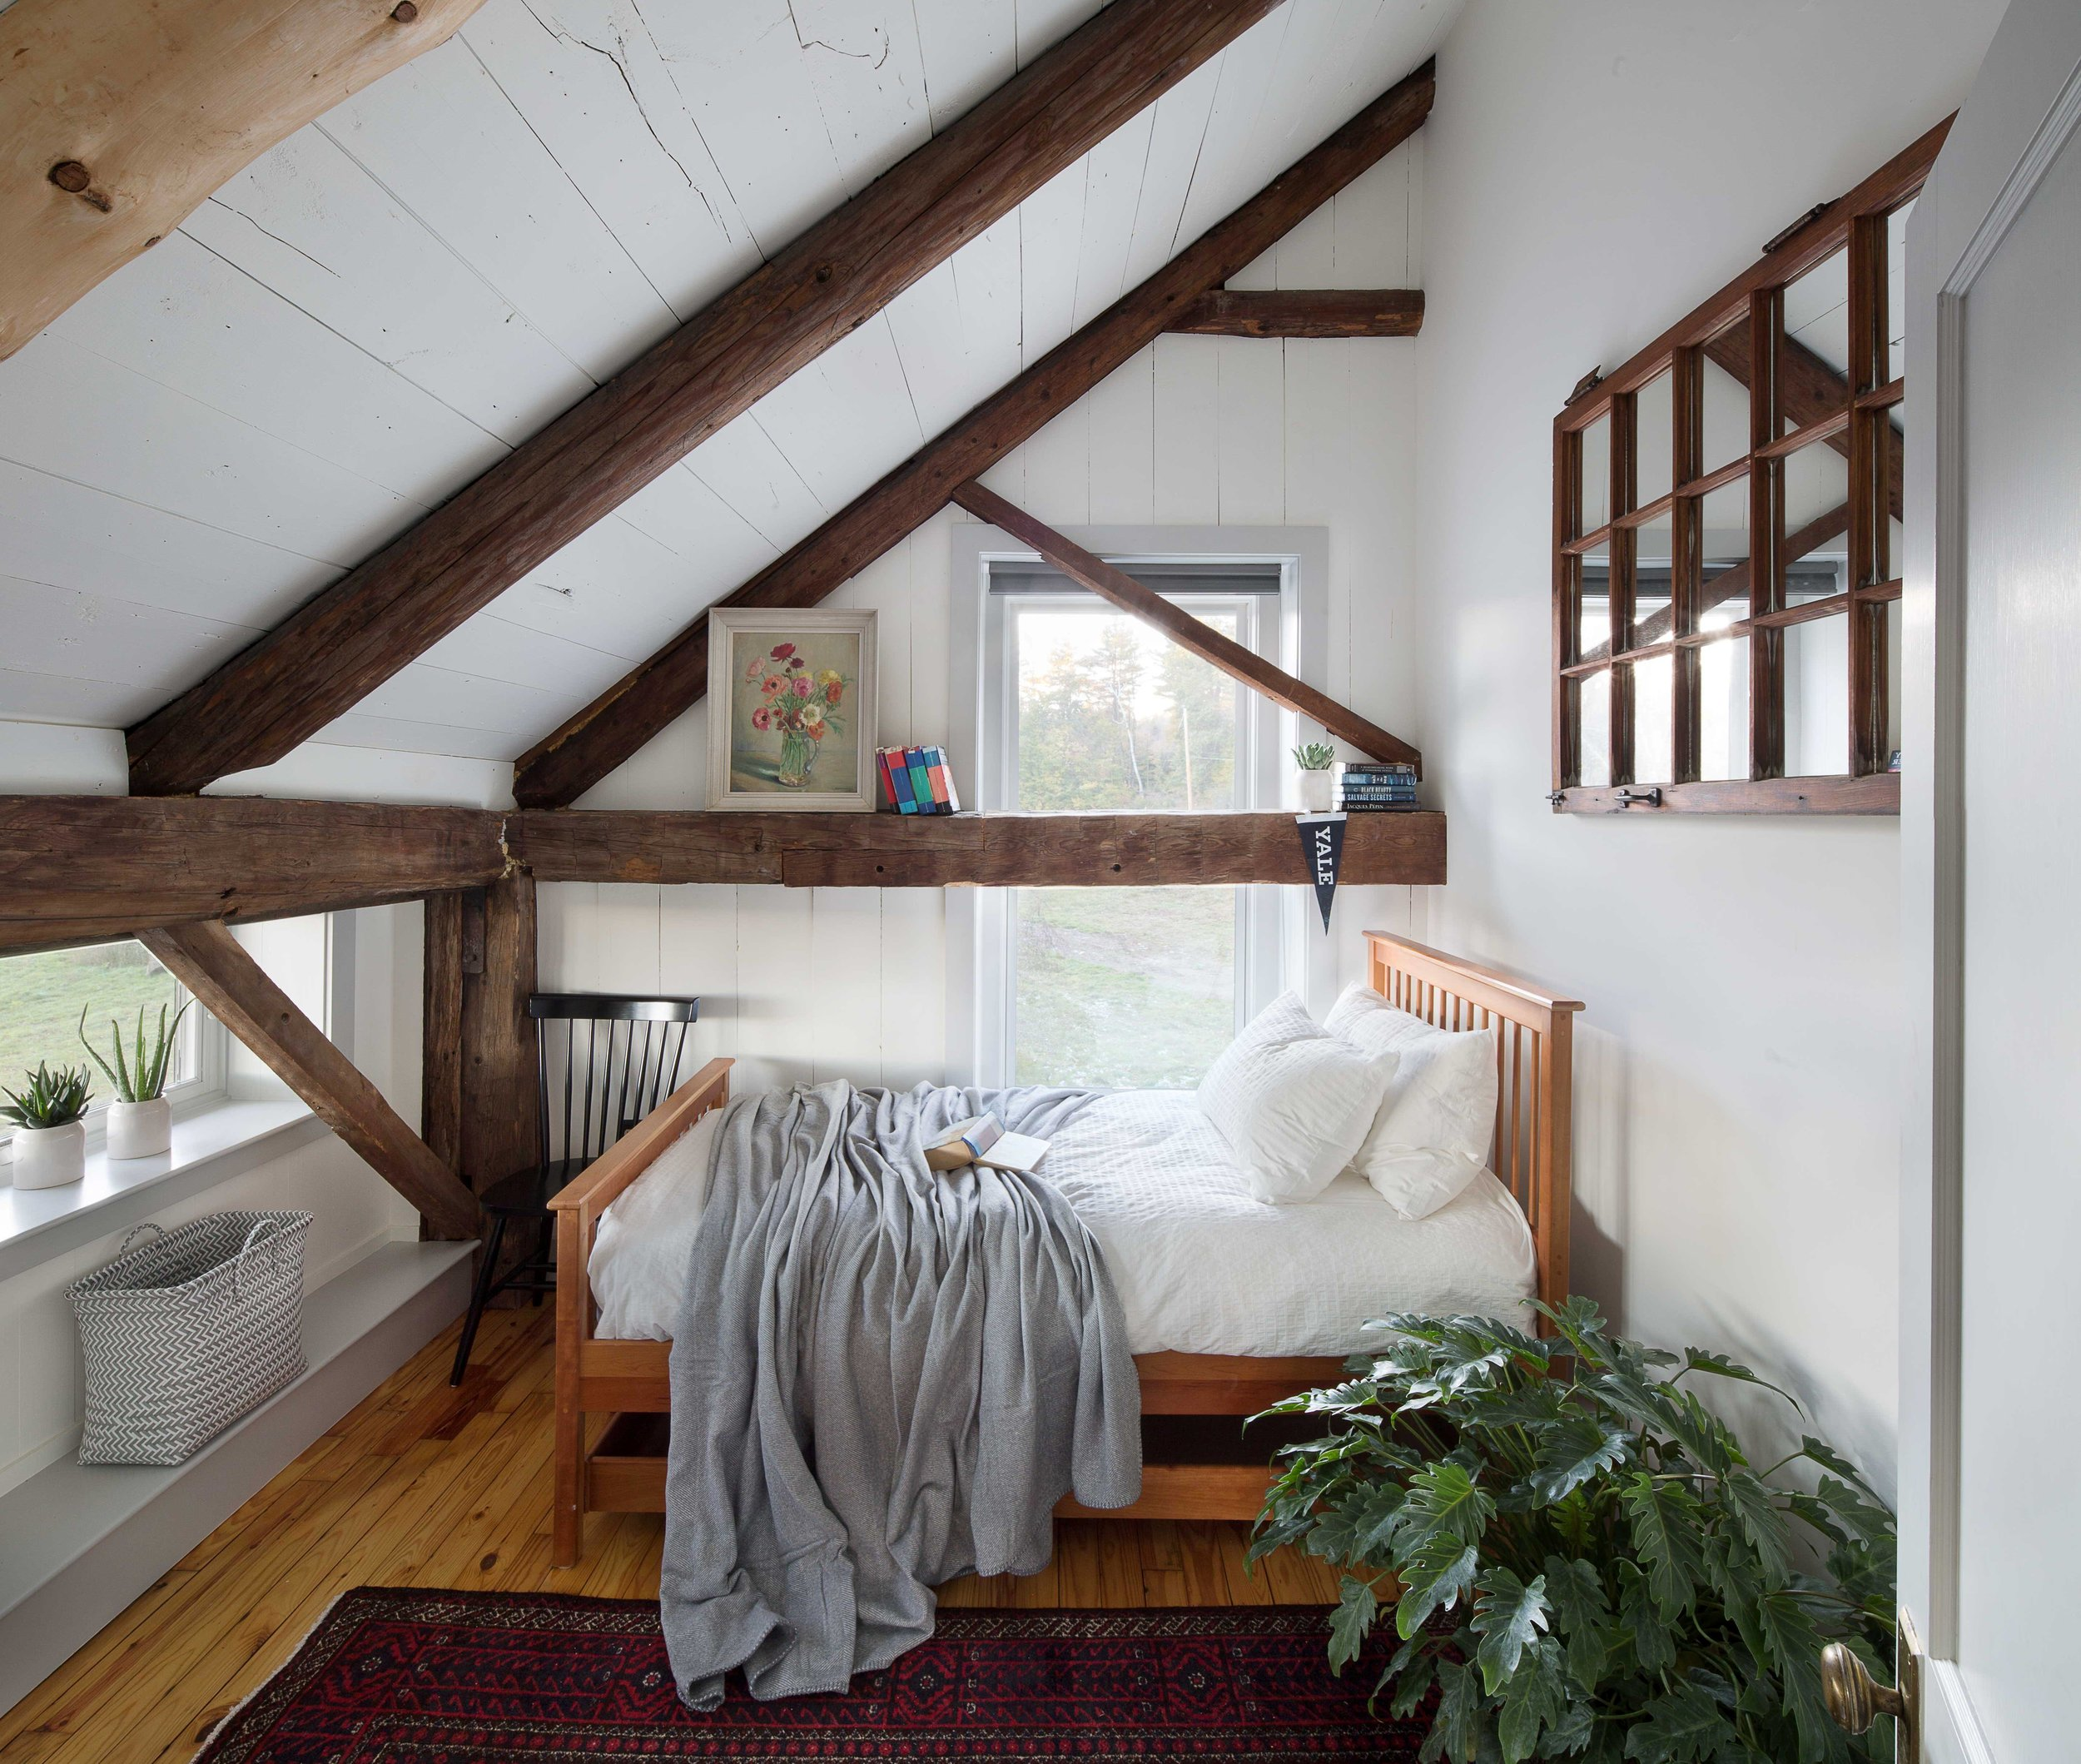 Vacaton Home Old Barn Interior Design by Joanne Palmisano Photo by Lindsay Selin.jpg